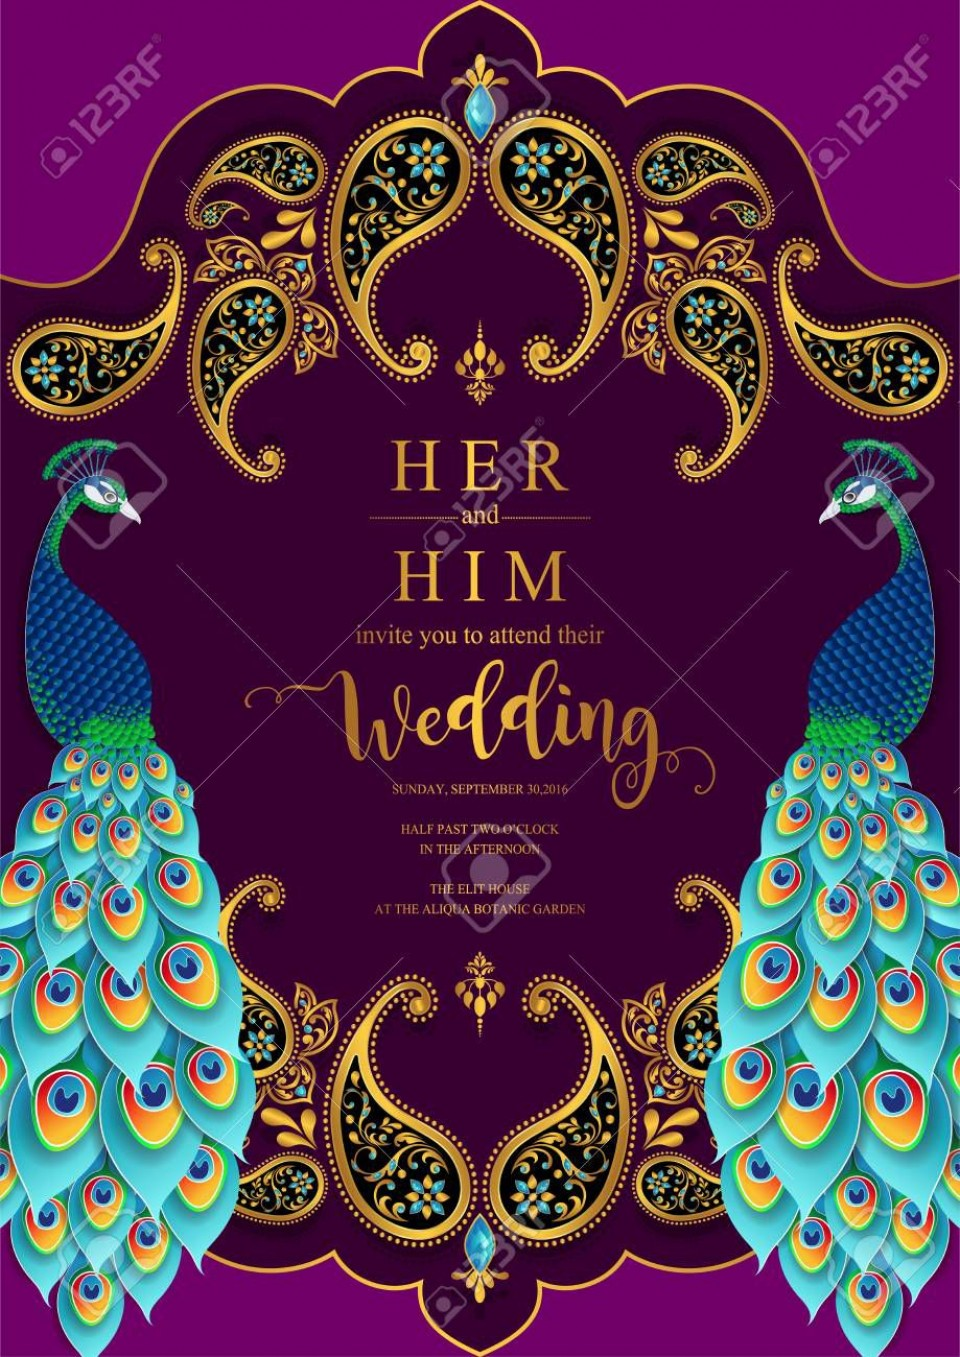 004 Astounding Indian Wedding Invitation Template Photo  Psd Free Download Marriage Online For Friend960